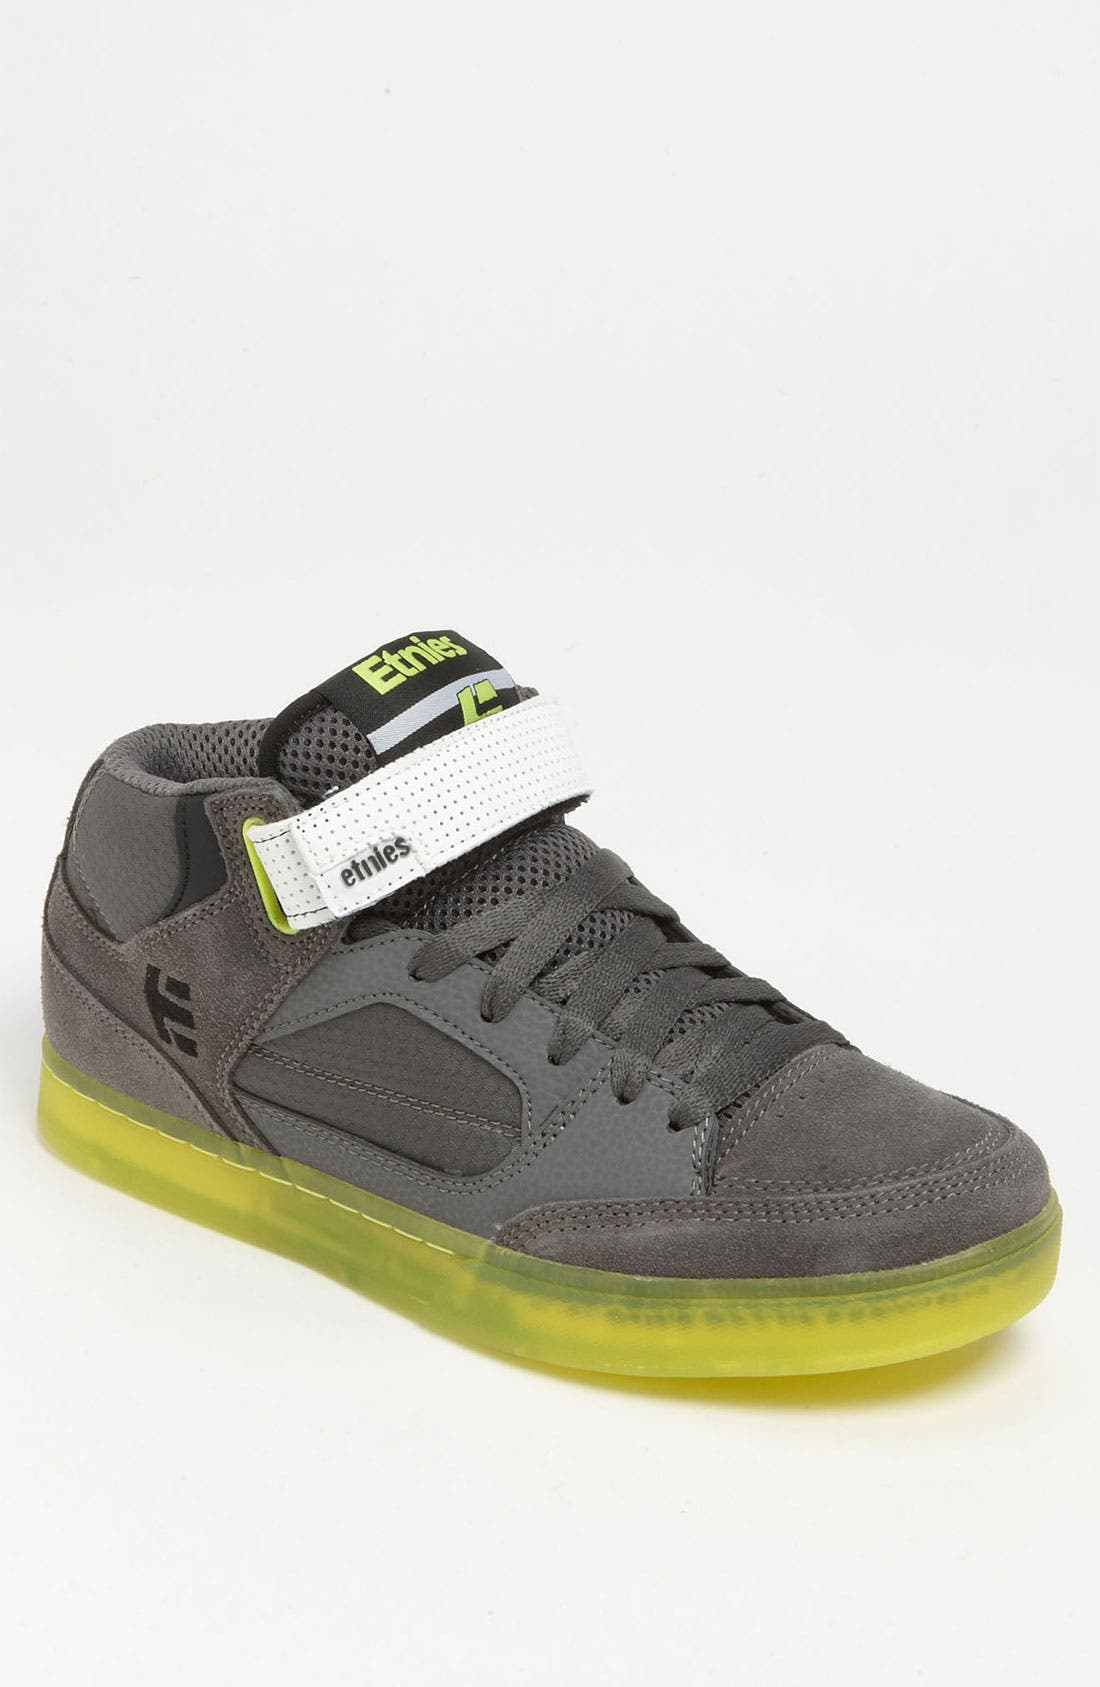 Alternate Image 1 Selected - Etnies 'Number Mid' Skate Shoe (Men)